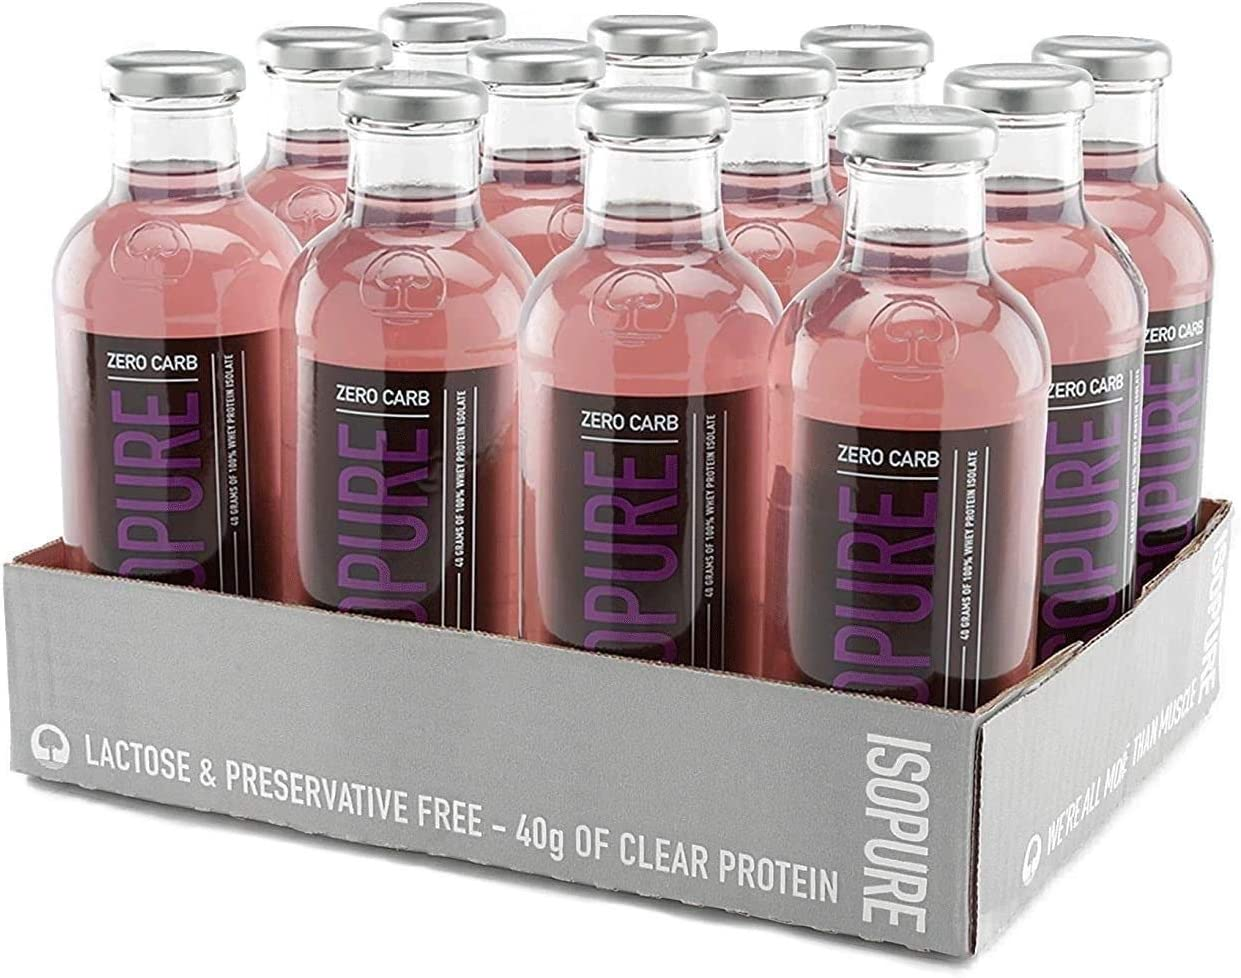 Isopure 40g Protein, Zero Carb Ready-To-Drink- Grape, 20 Ounce (Pack of 12): Health & Personal Care